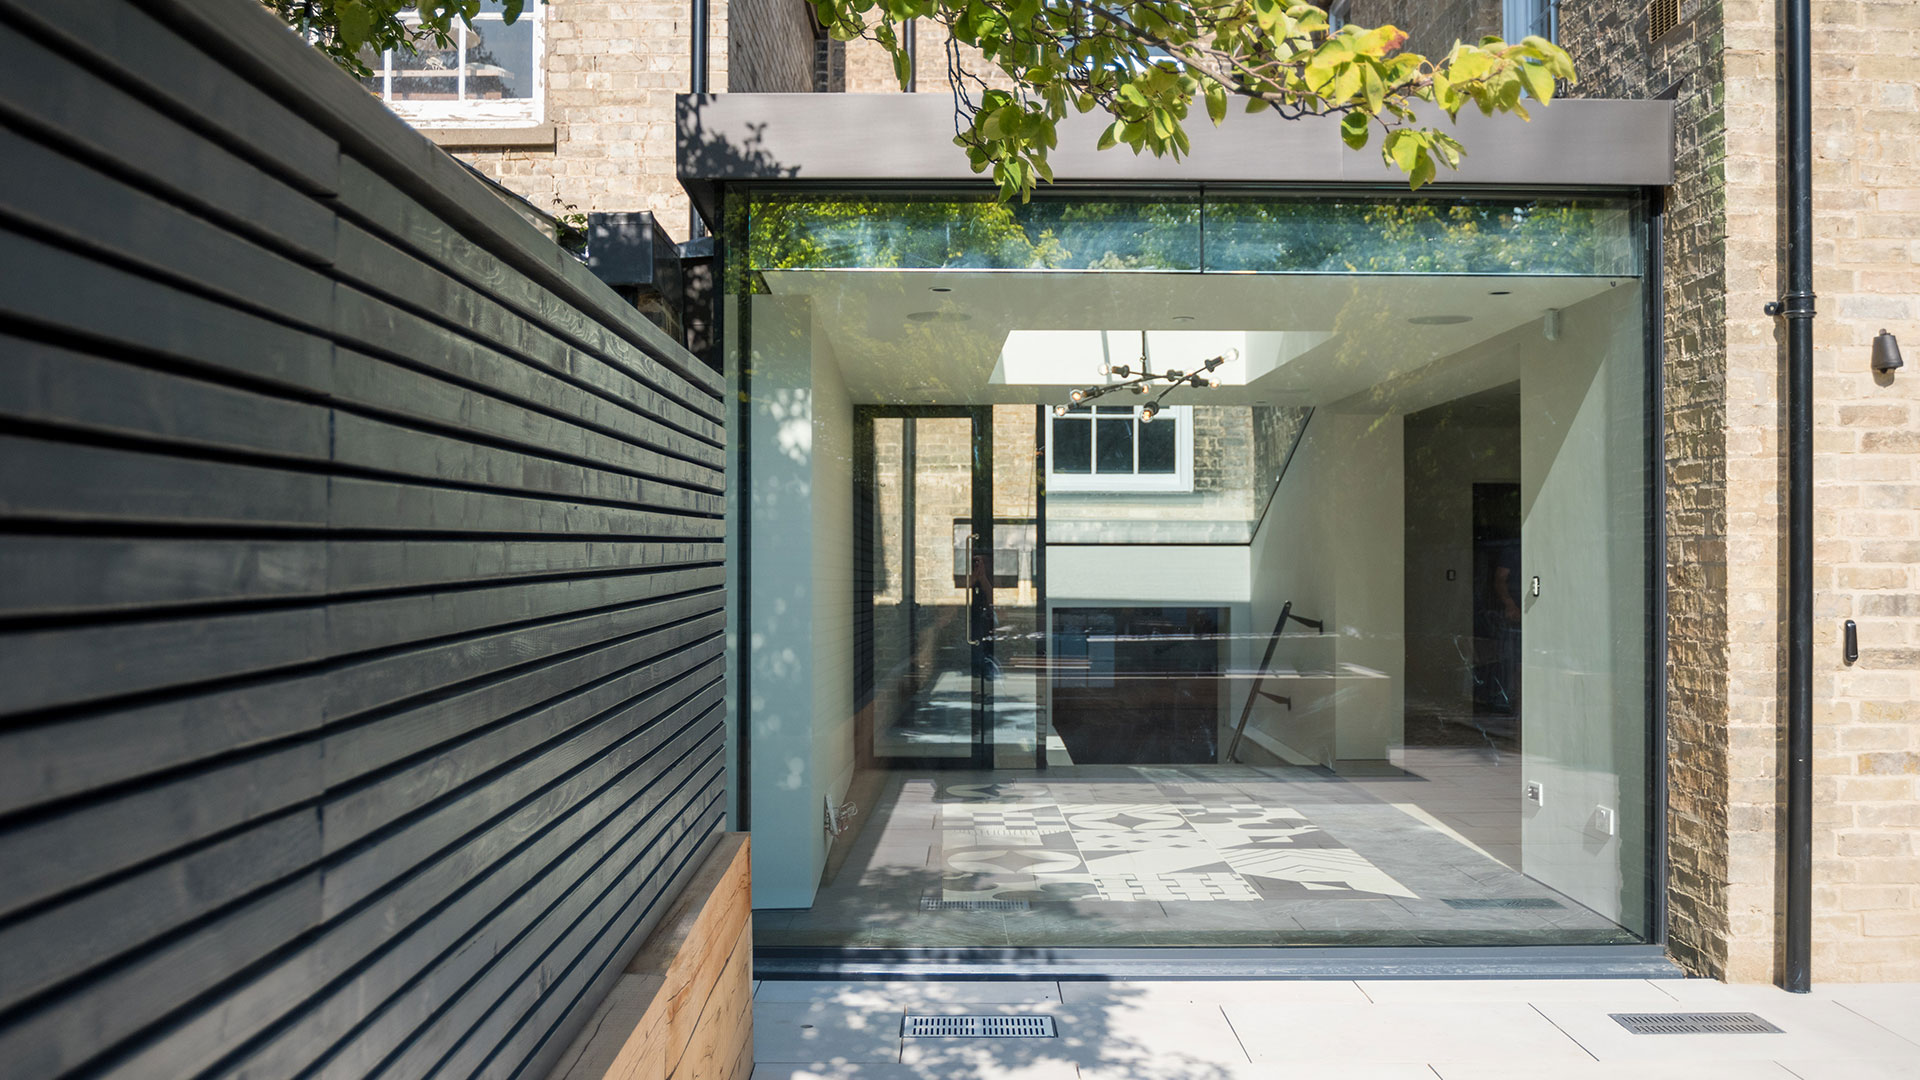 Glass Box | Glass Rooflight | Glass Extension | Modern Design | Architect | Building Contractor | Design and Build | Construction | Interior Design | Building | Refurbishment | Cambridge | London | Suffolk | Essex | Saffron Walden | Hertfordshire | The Daniels Group